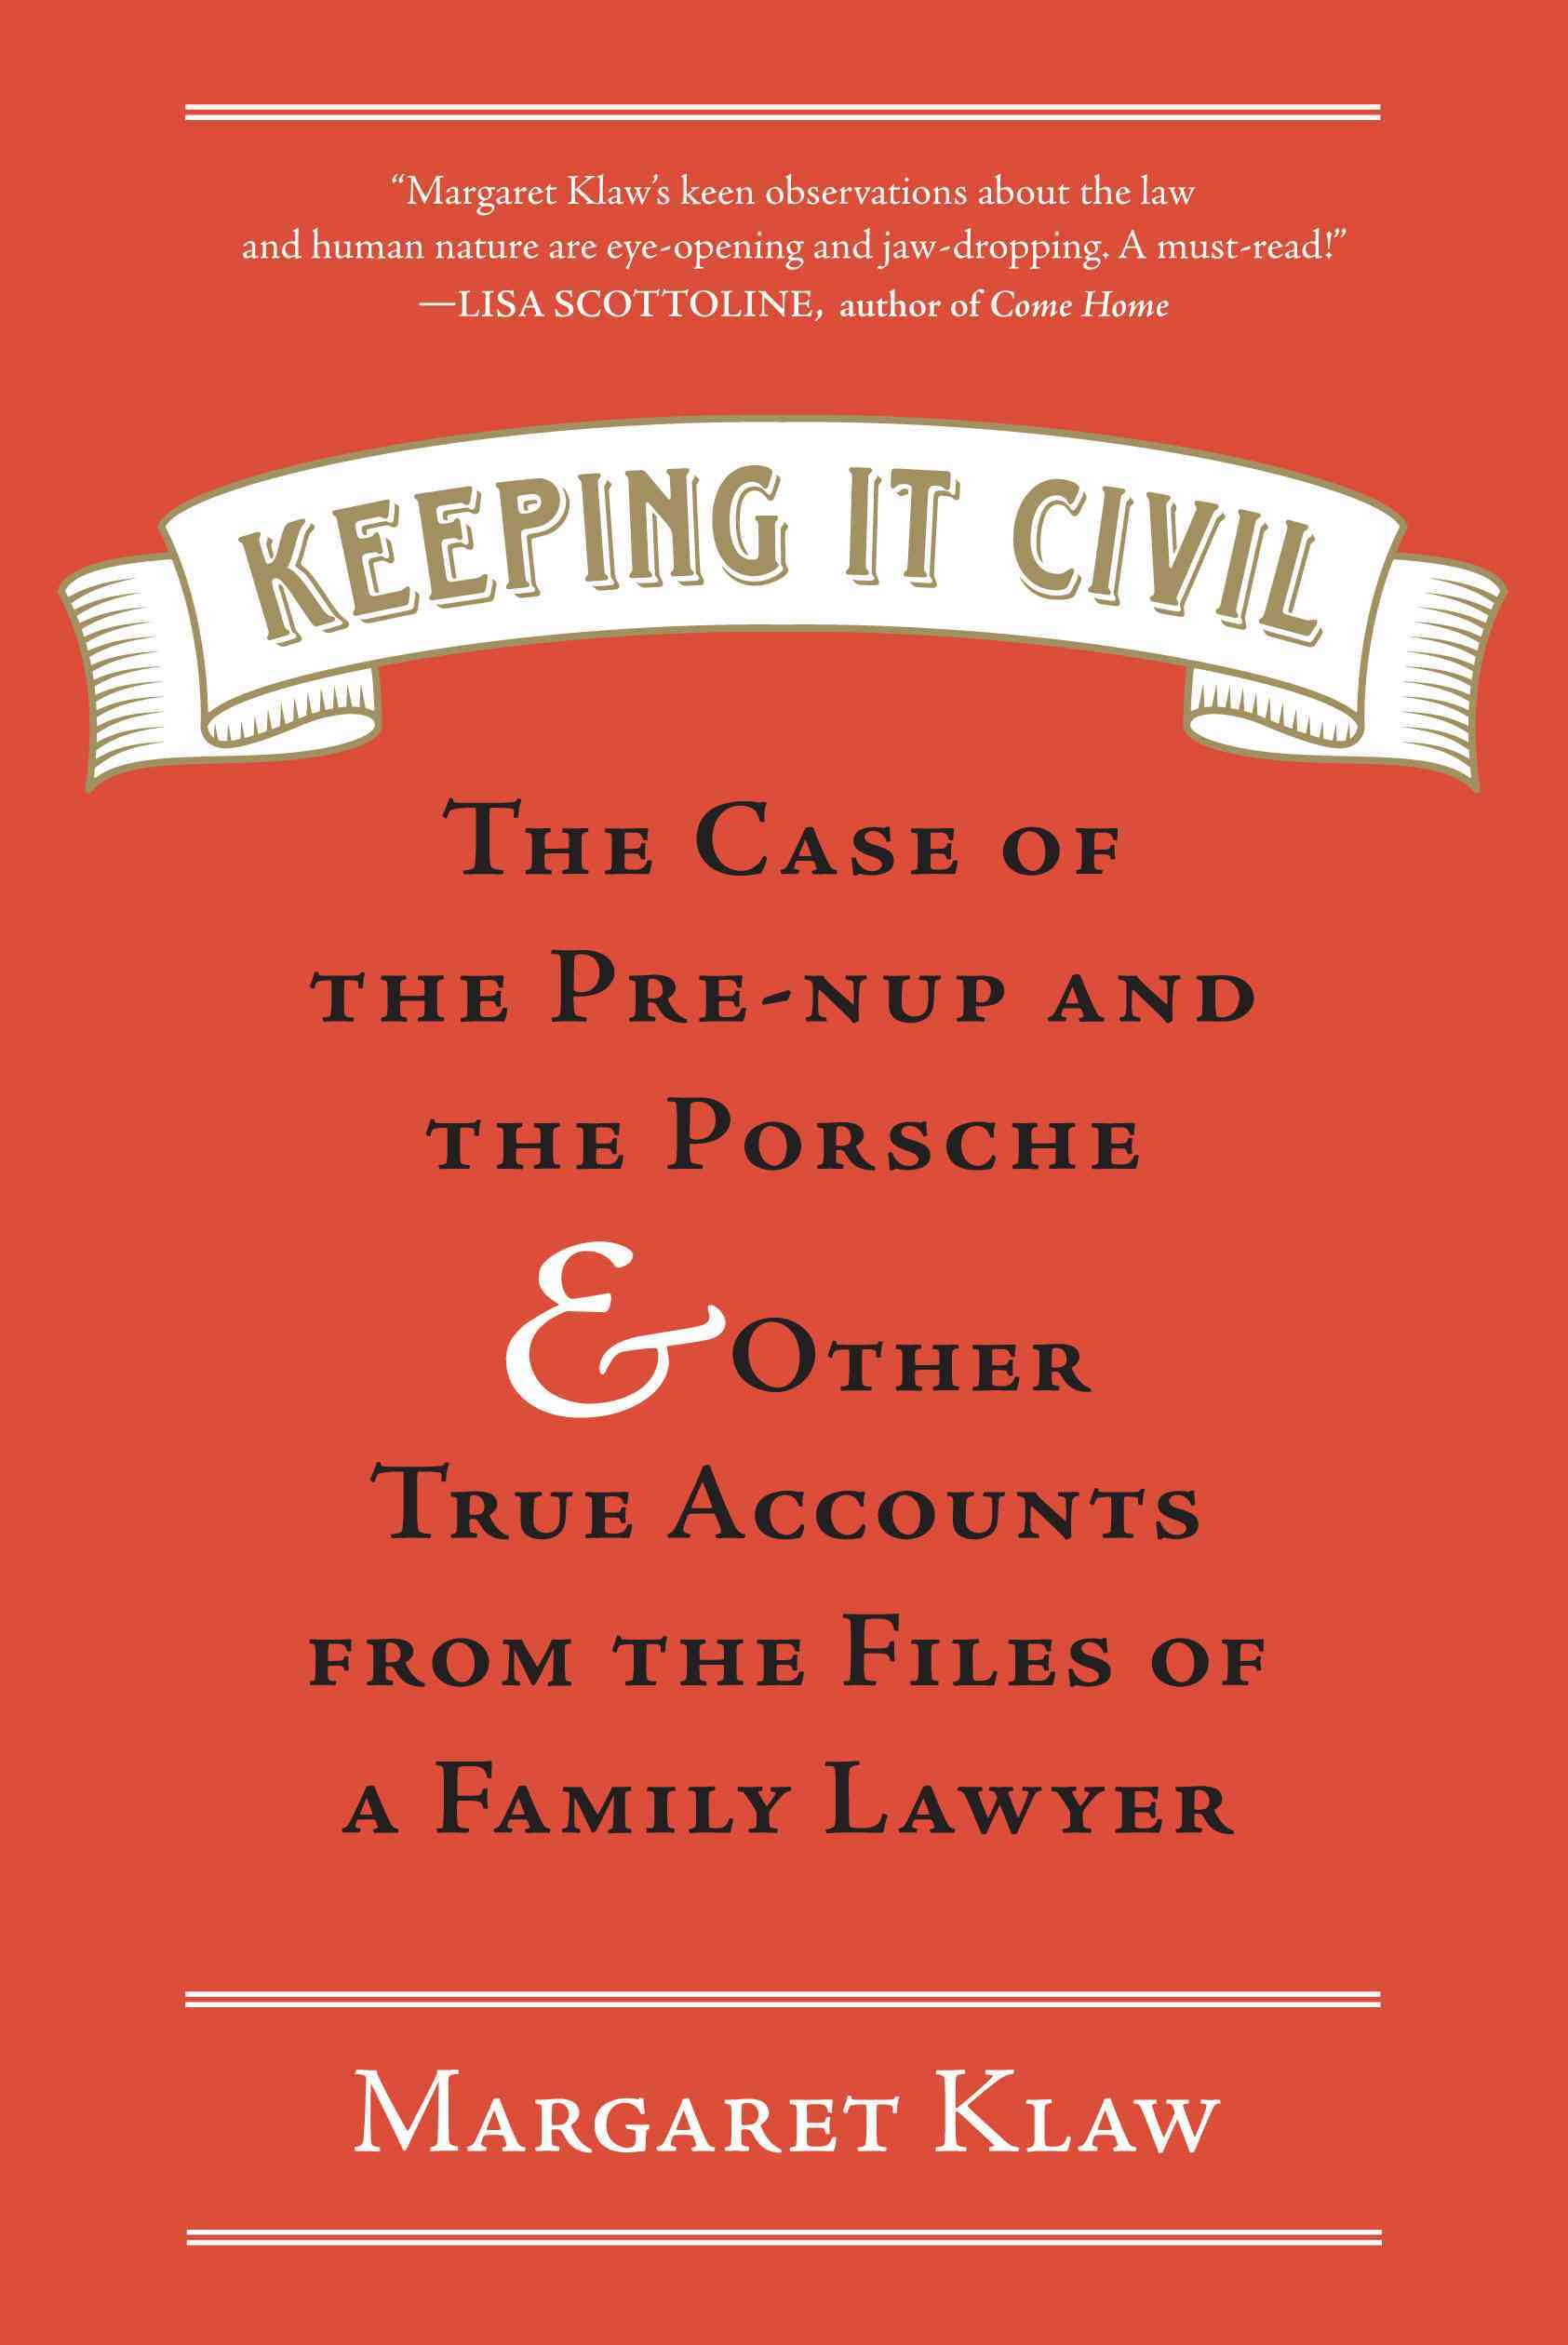 Keeping It Civil: The Case of the Pre-nup and the Porsche & Other True Accounts from the Files of a Family Lawyer (Hardcover)